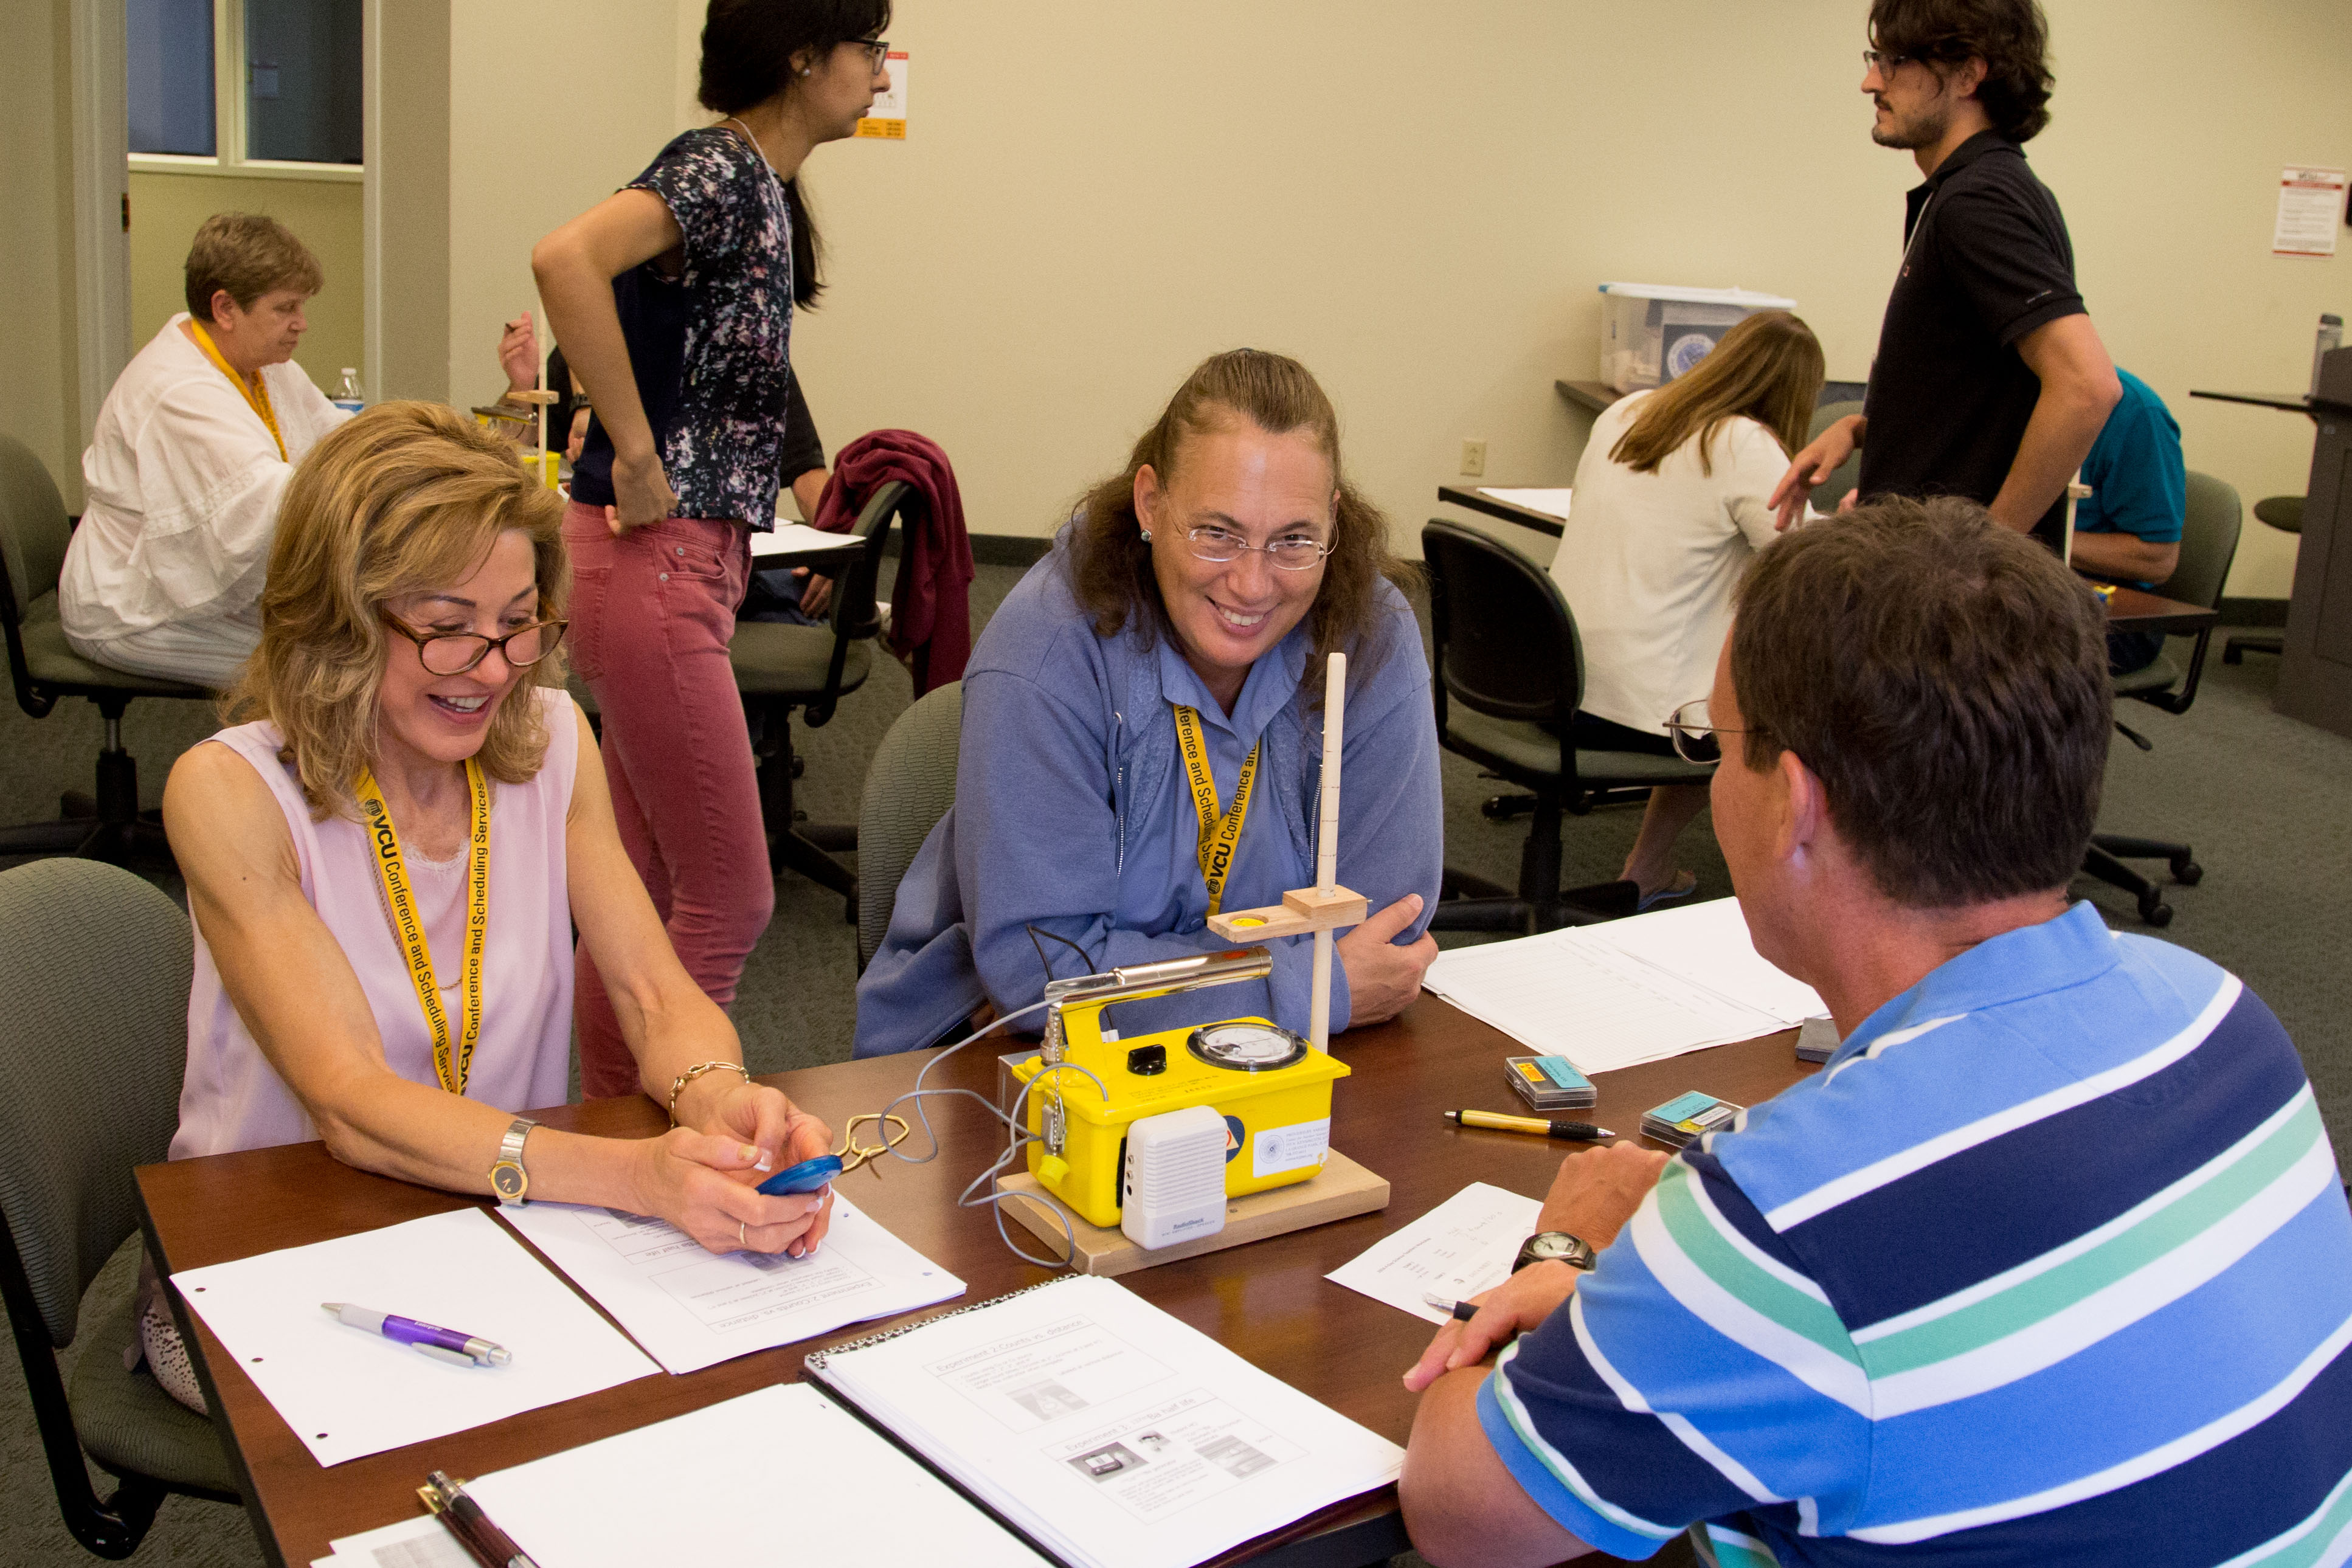 science-teachers-workshop-07-2016-5671_28250533311_o